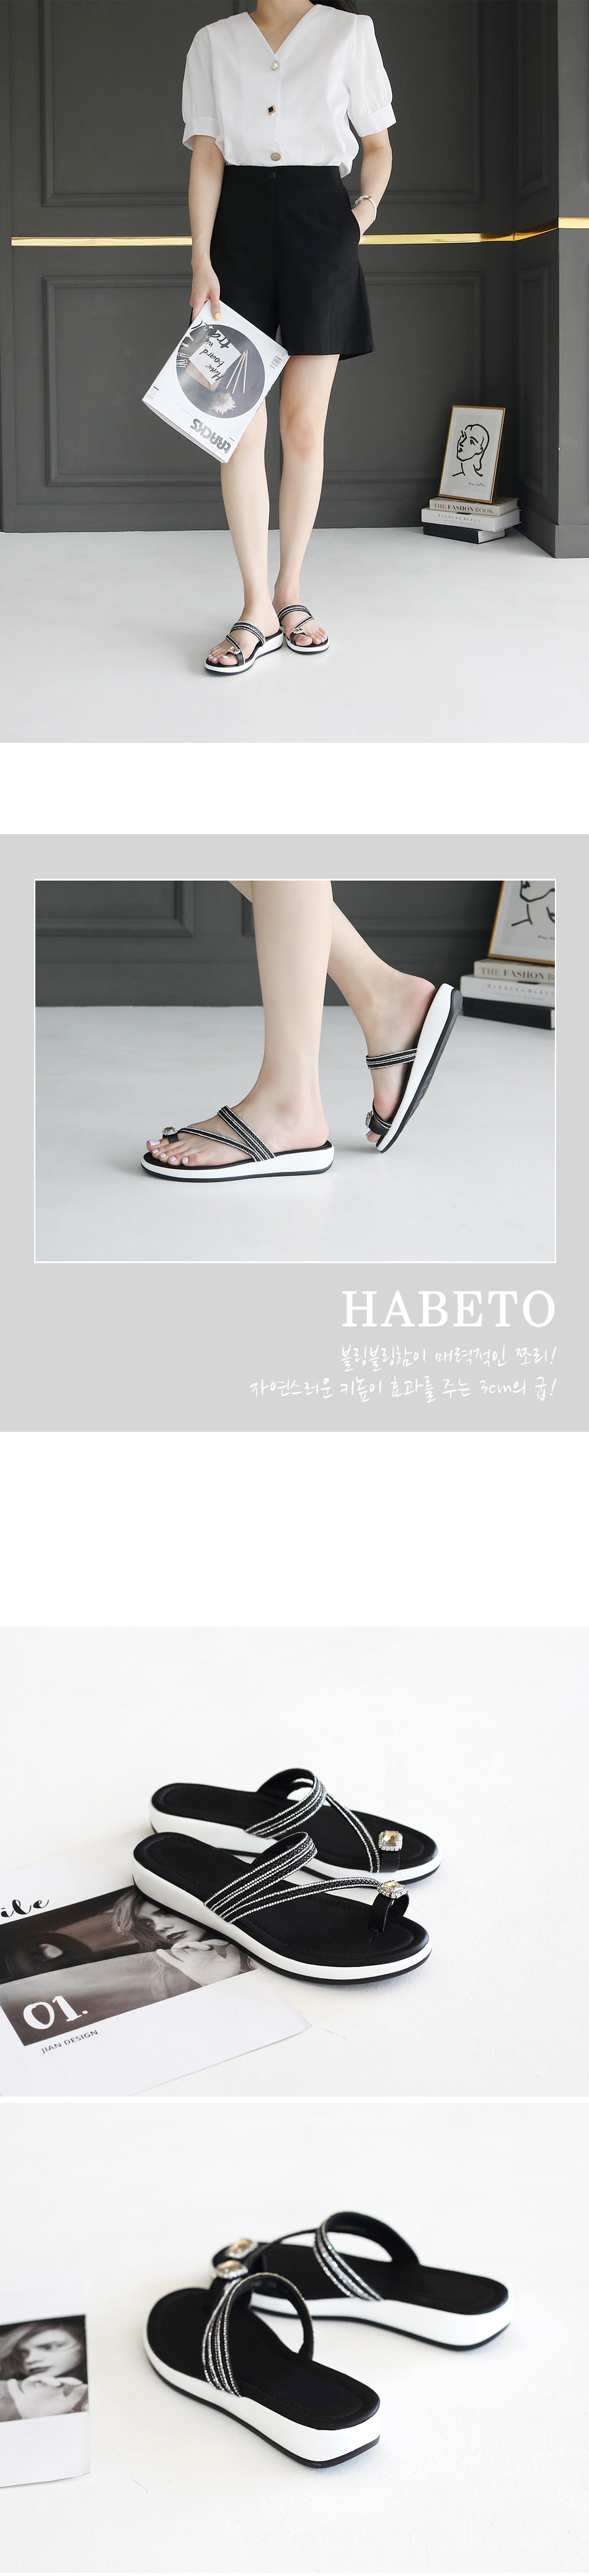 Haveto Slit Slippers 3cm